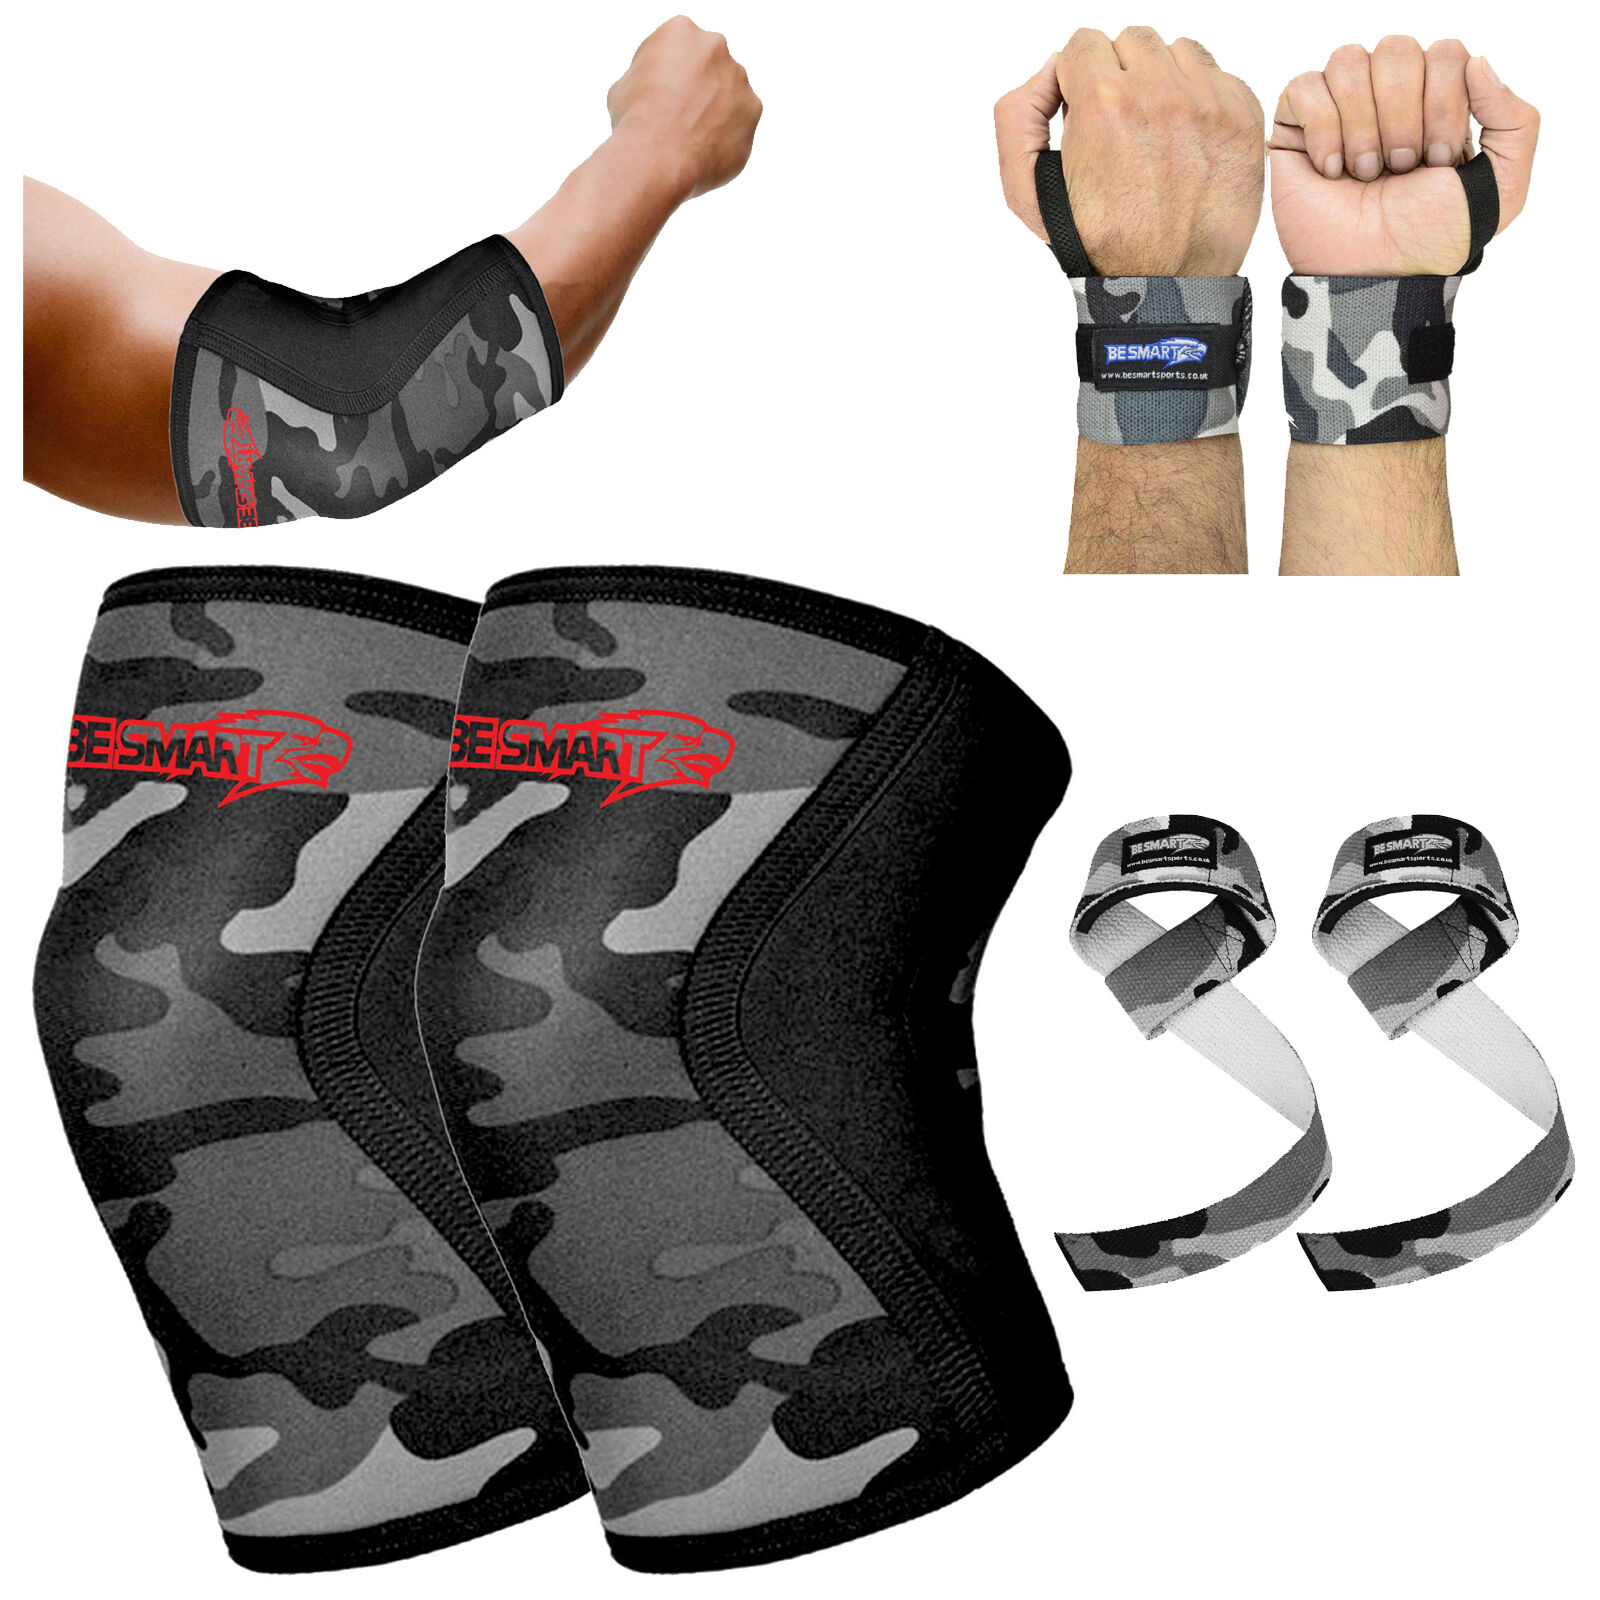 Lifters Knee Sleeves Elbow  Wrist Wraps Strap Crossfit Powerlifting Squatting